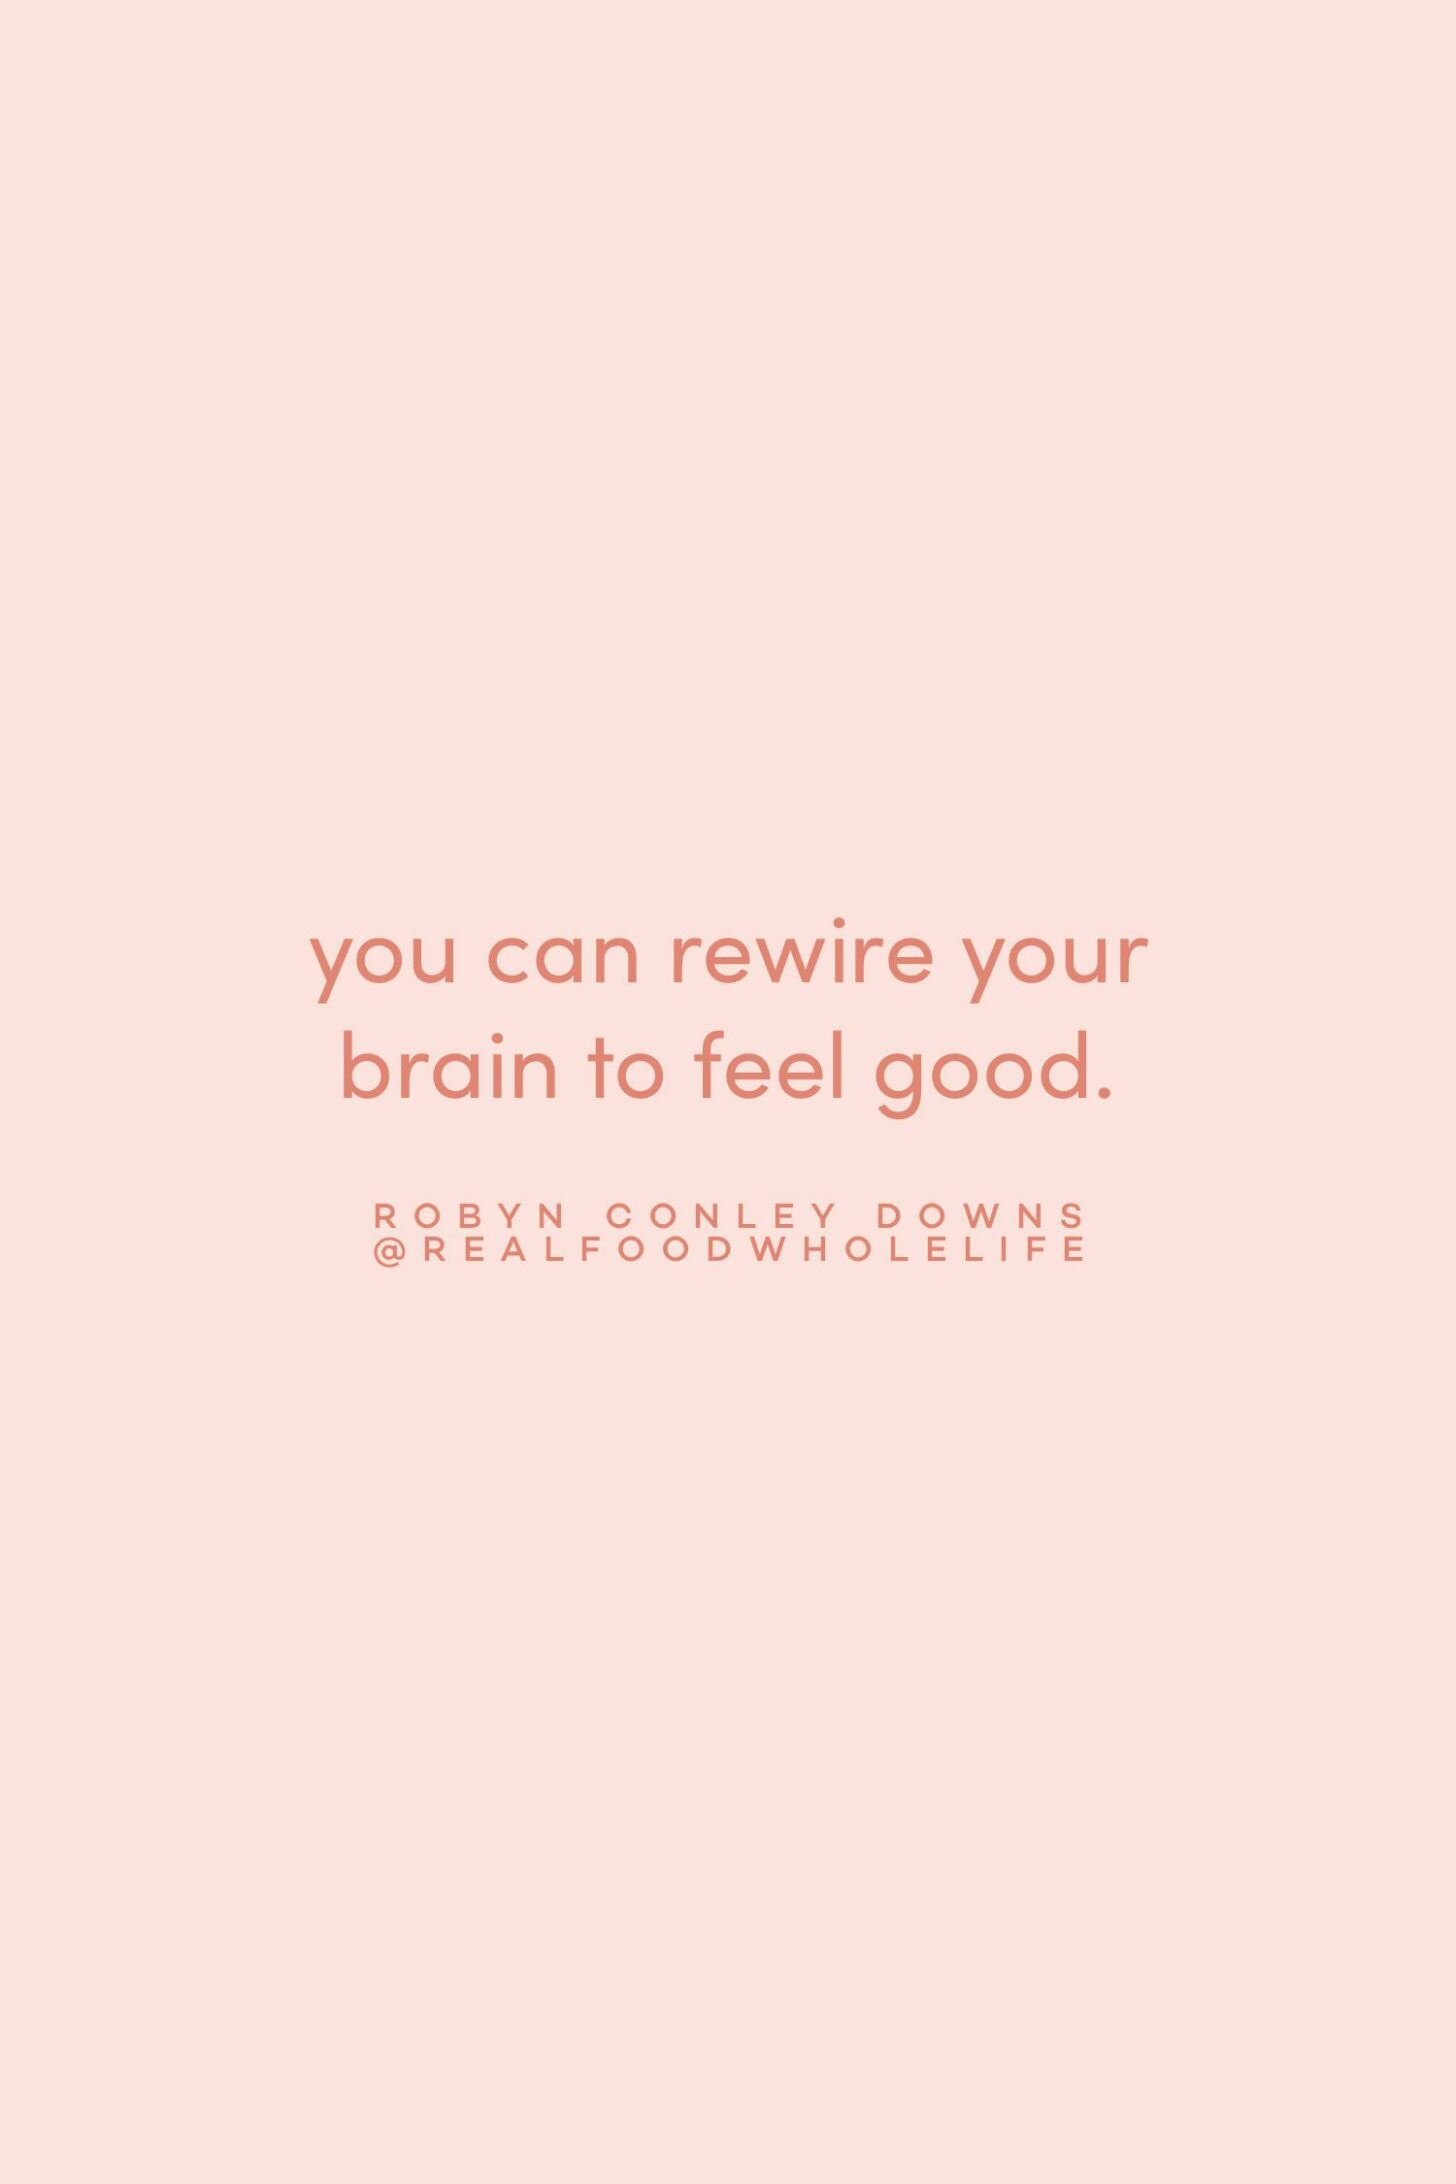 Quote on rewiring your brain to feel good by Robyn Conley Downs on the Feel Good Effect Podcast #realfoodwholelife #feelgoodeffect #motivationalquote #positivityquote #inspirationalquote #selfcompassionquote #wellbeingquote #selfcarequote #neurosciencequote #mindfulnessquote #brianquote